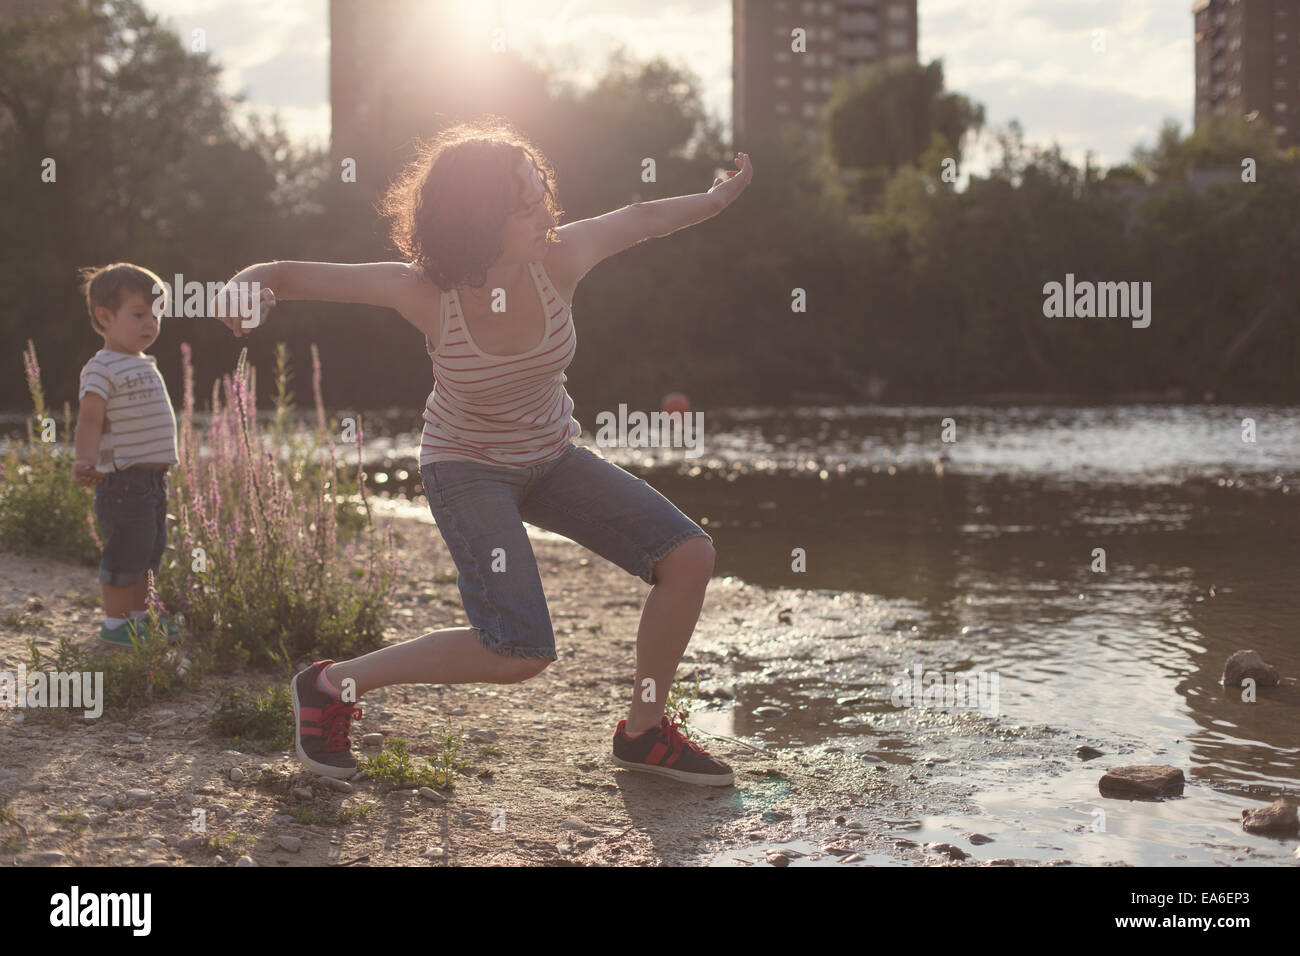 Mother and son standing by a river stone skipping - Stock Image